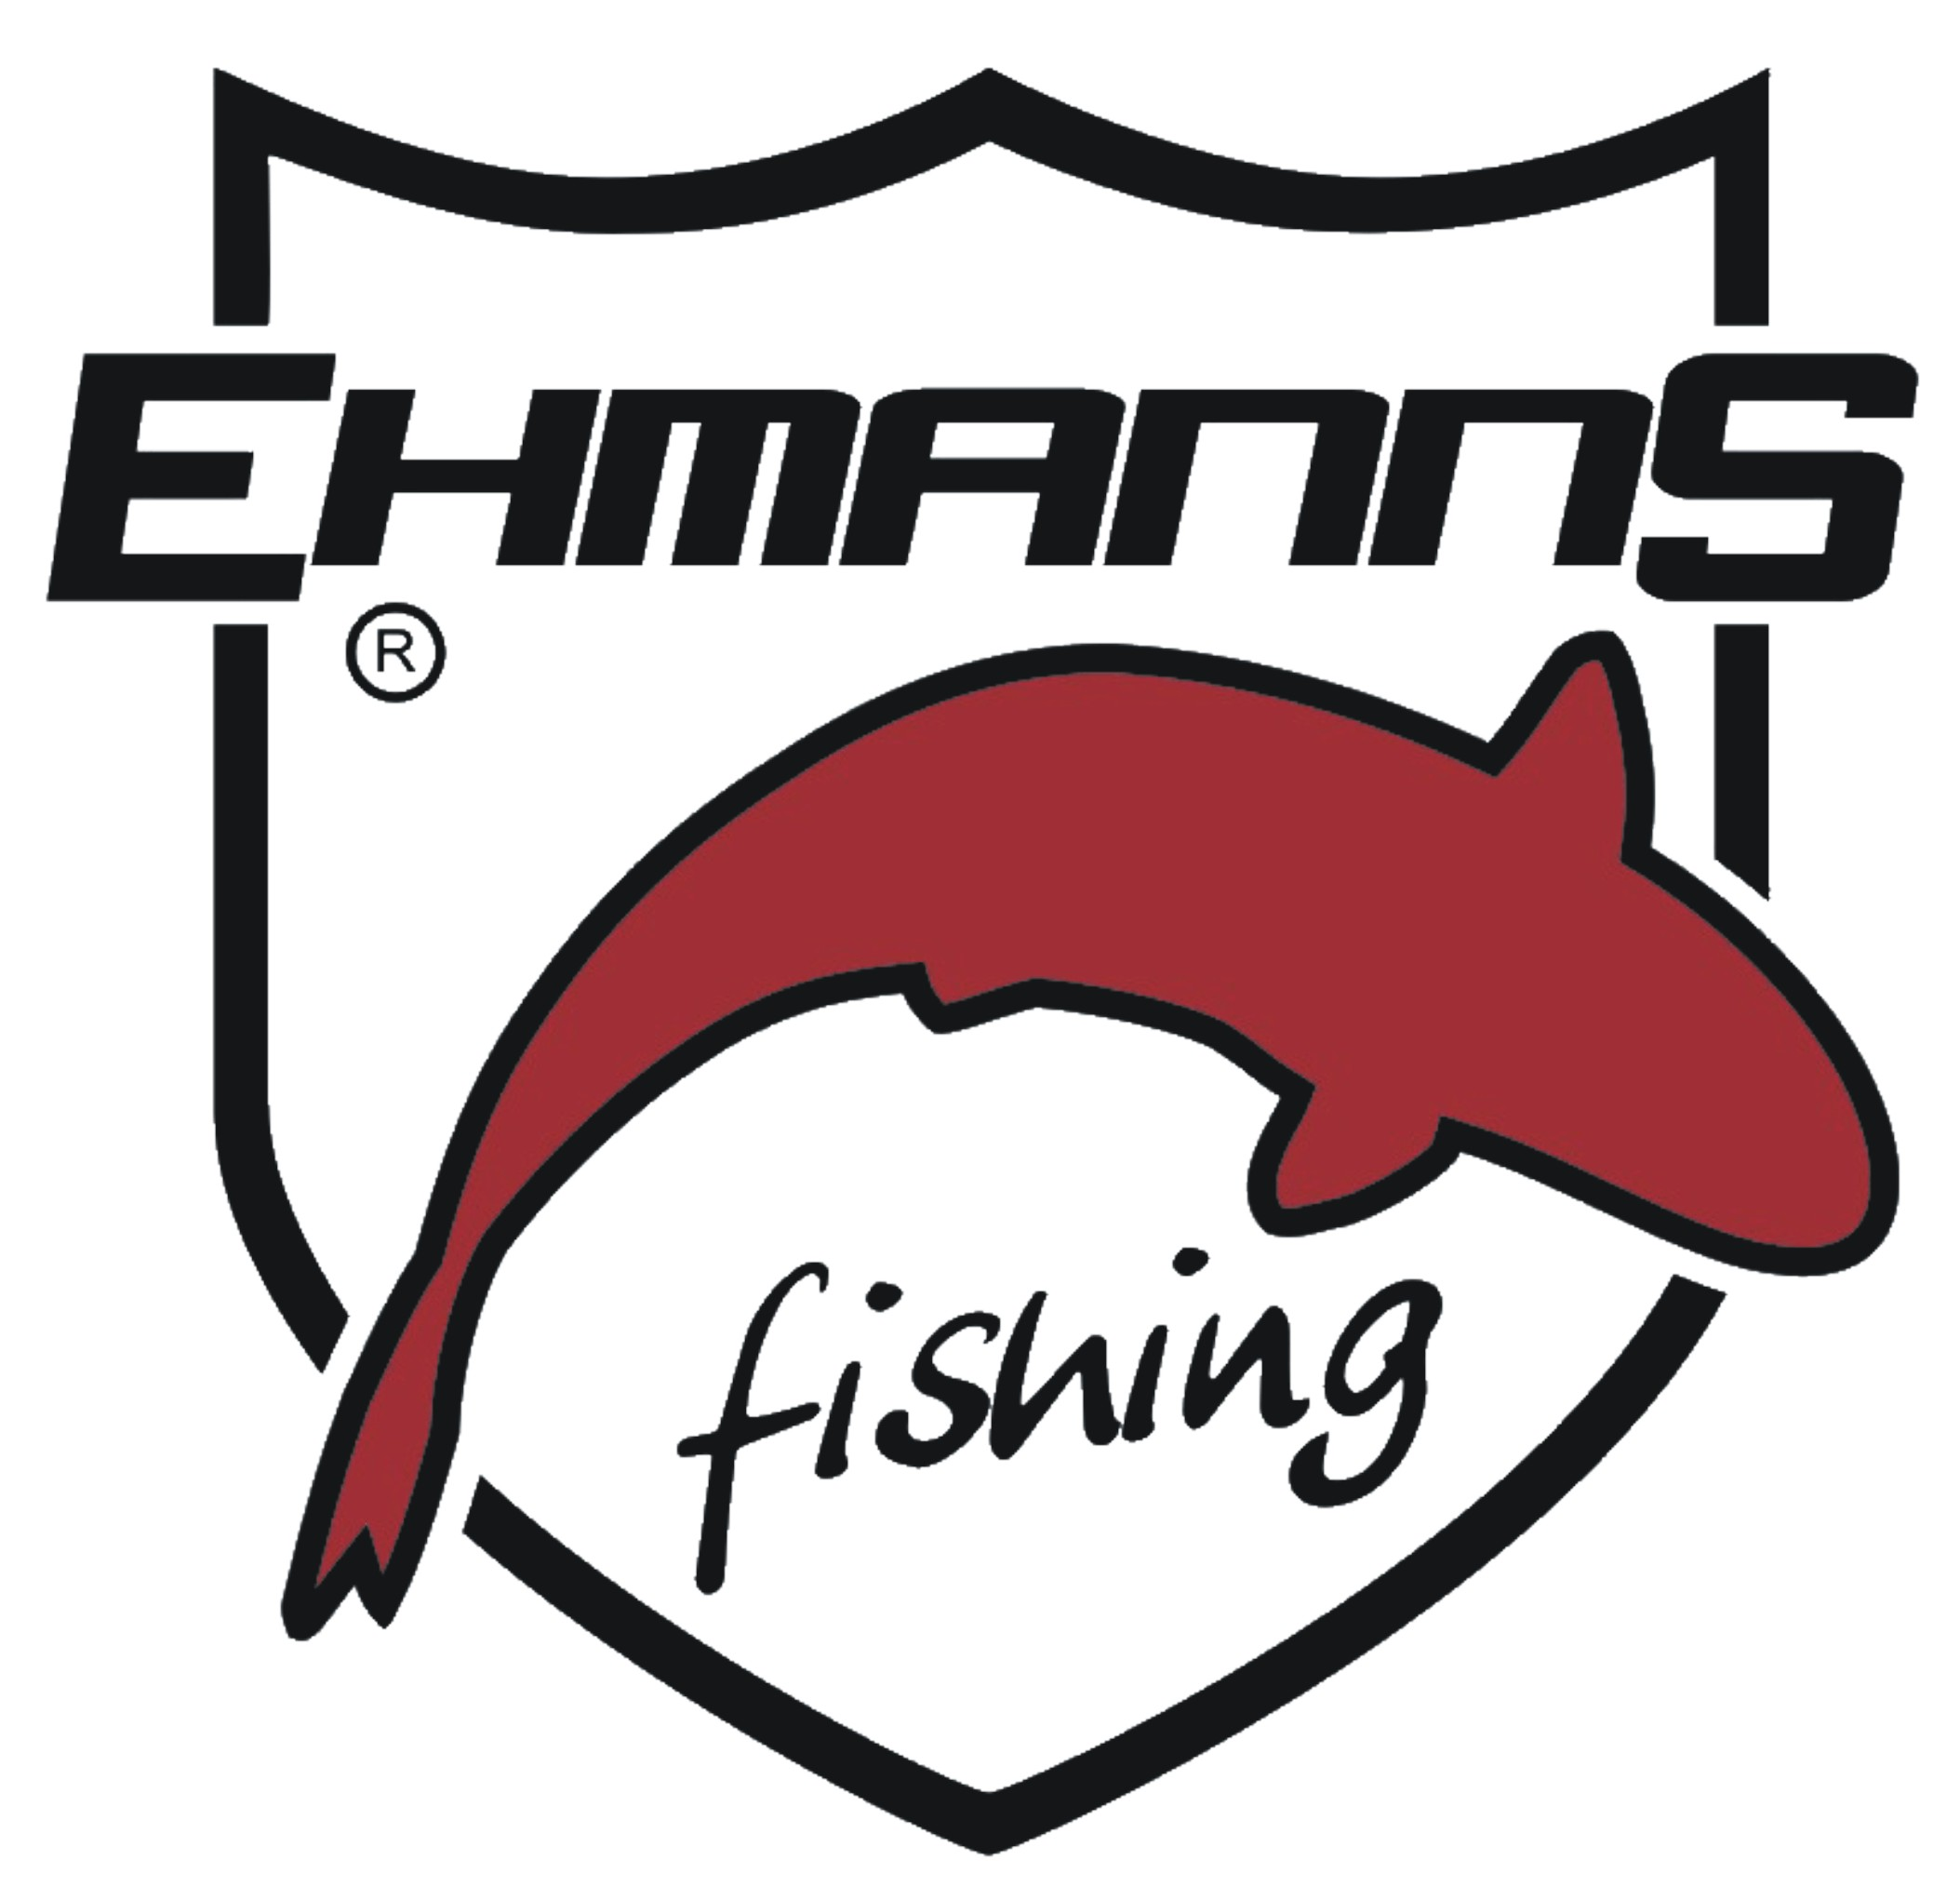 Ehmanns Fishing